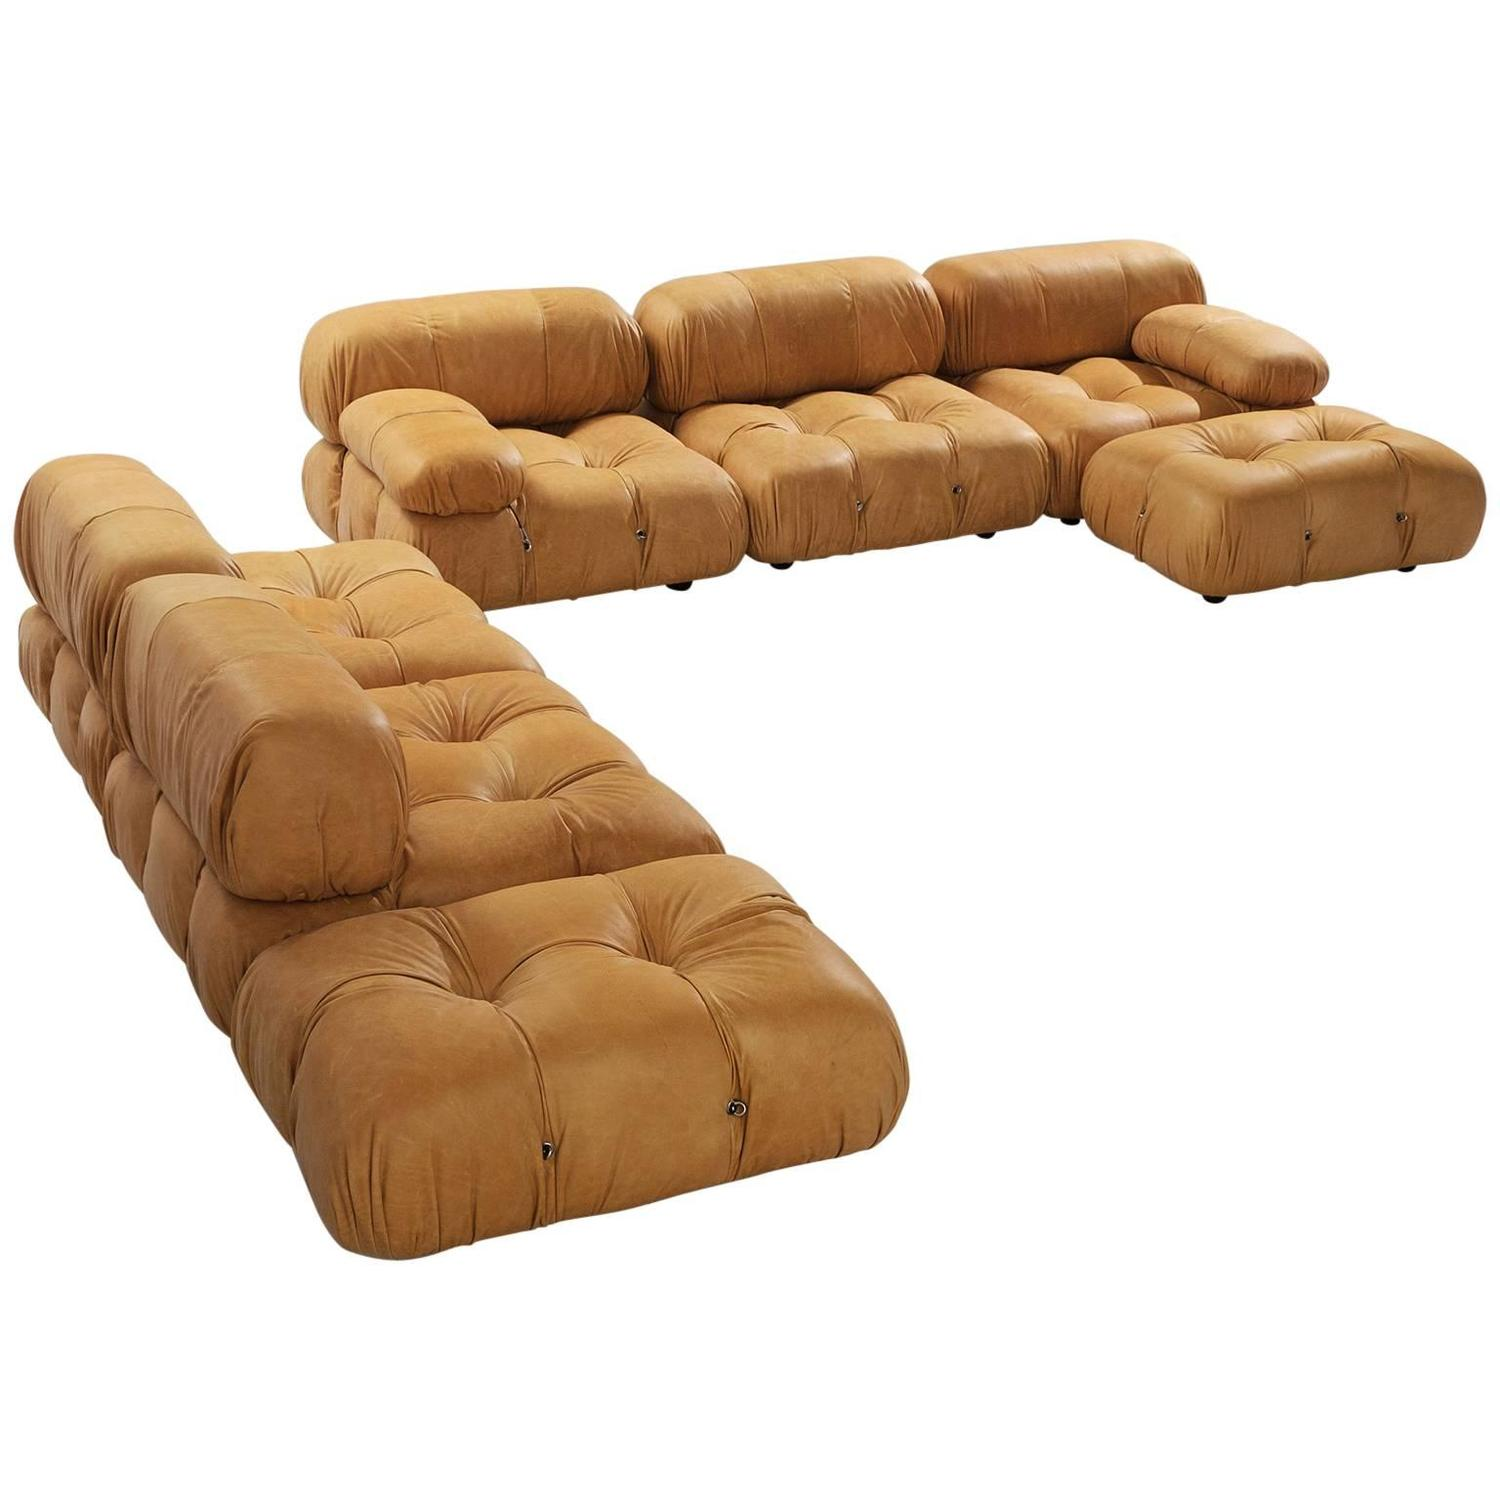 mario bellini reupholstered 39 camaleonda 39 modular sofa in cognac leather for sale at 1stdibs. Black Bedroom Furniture Sets. Home Design Ideas